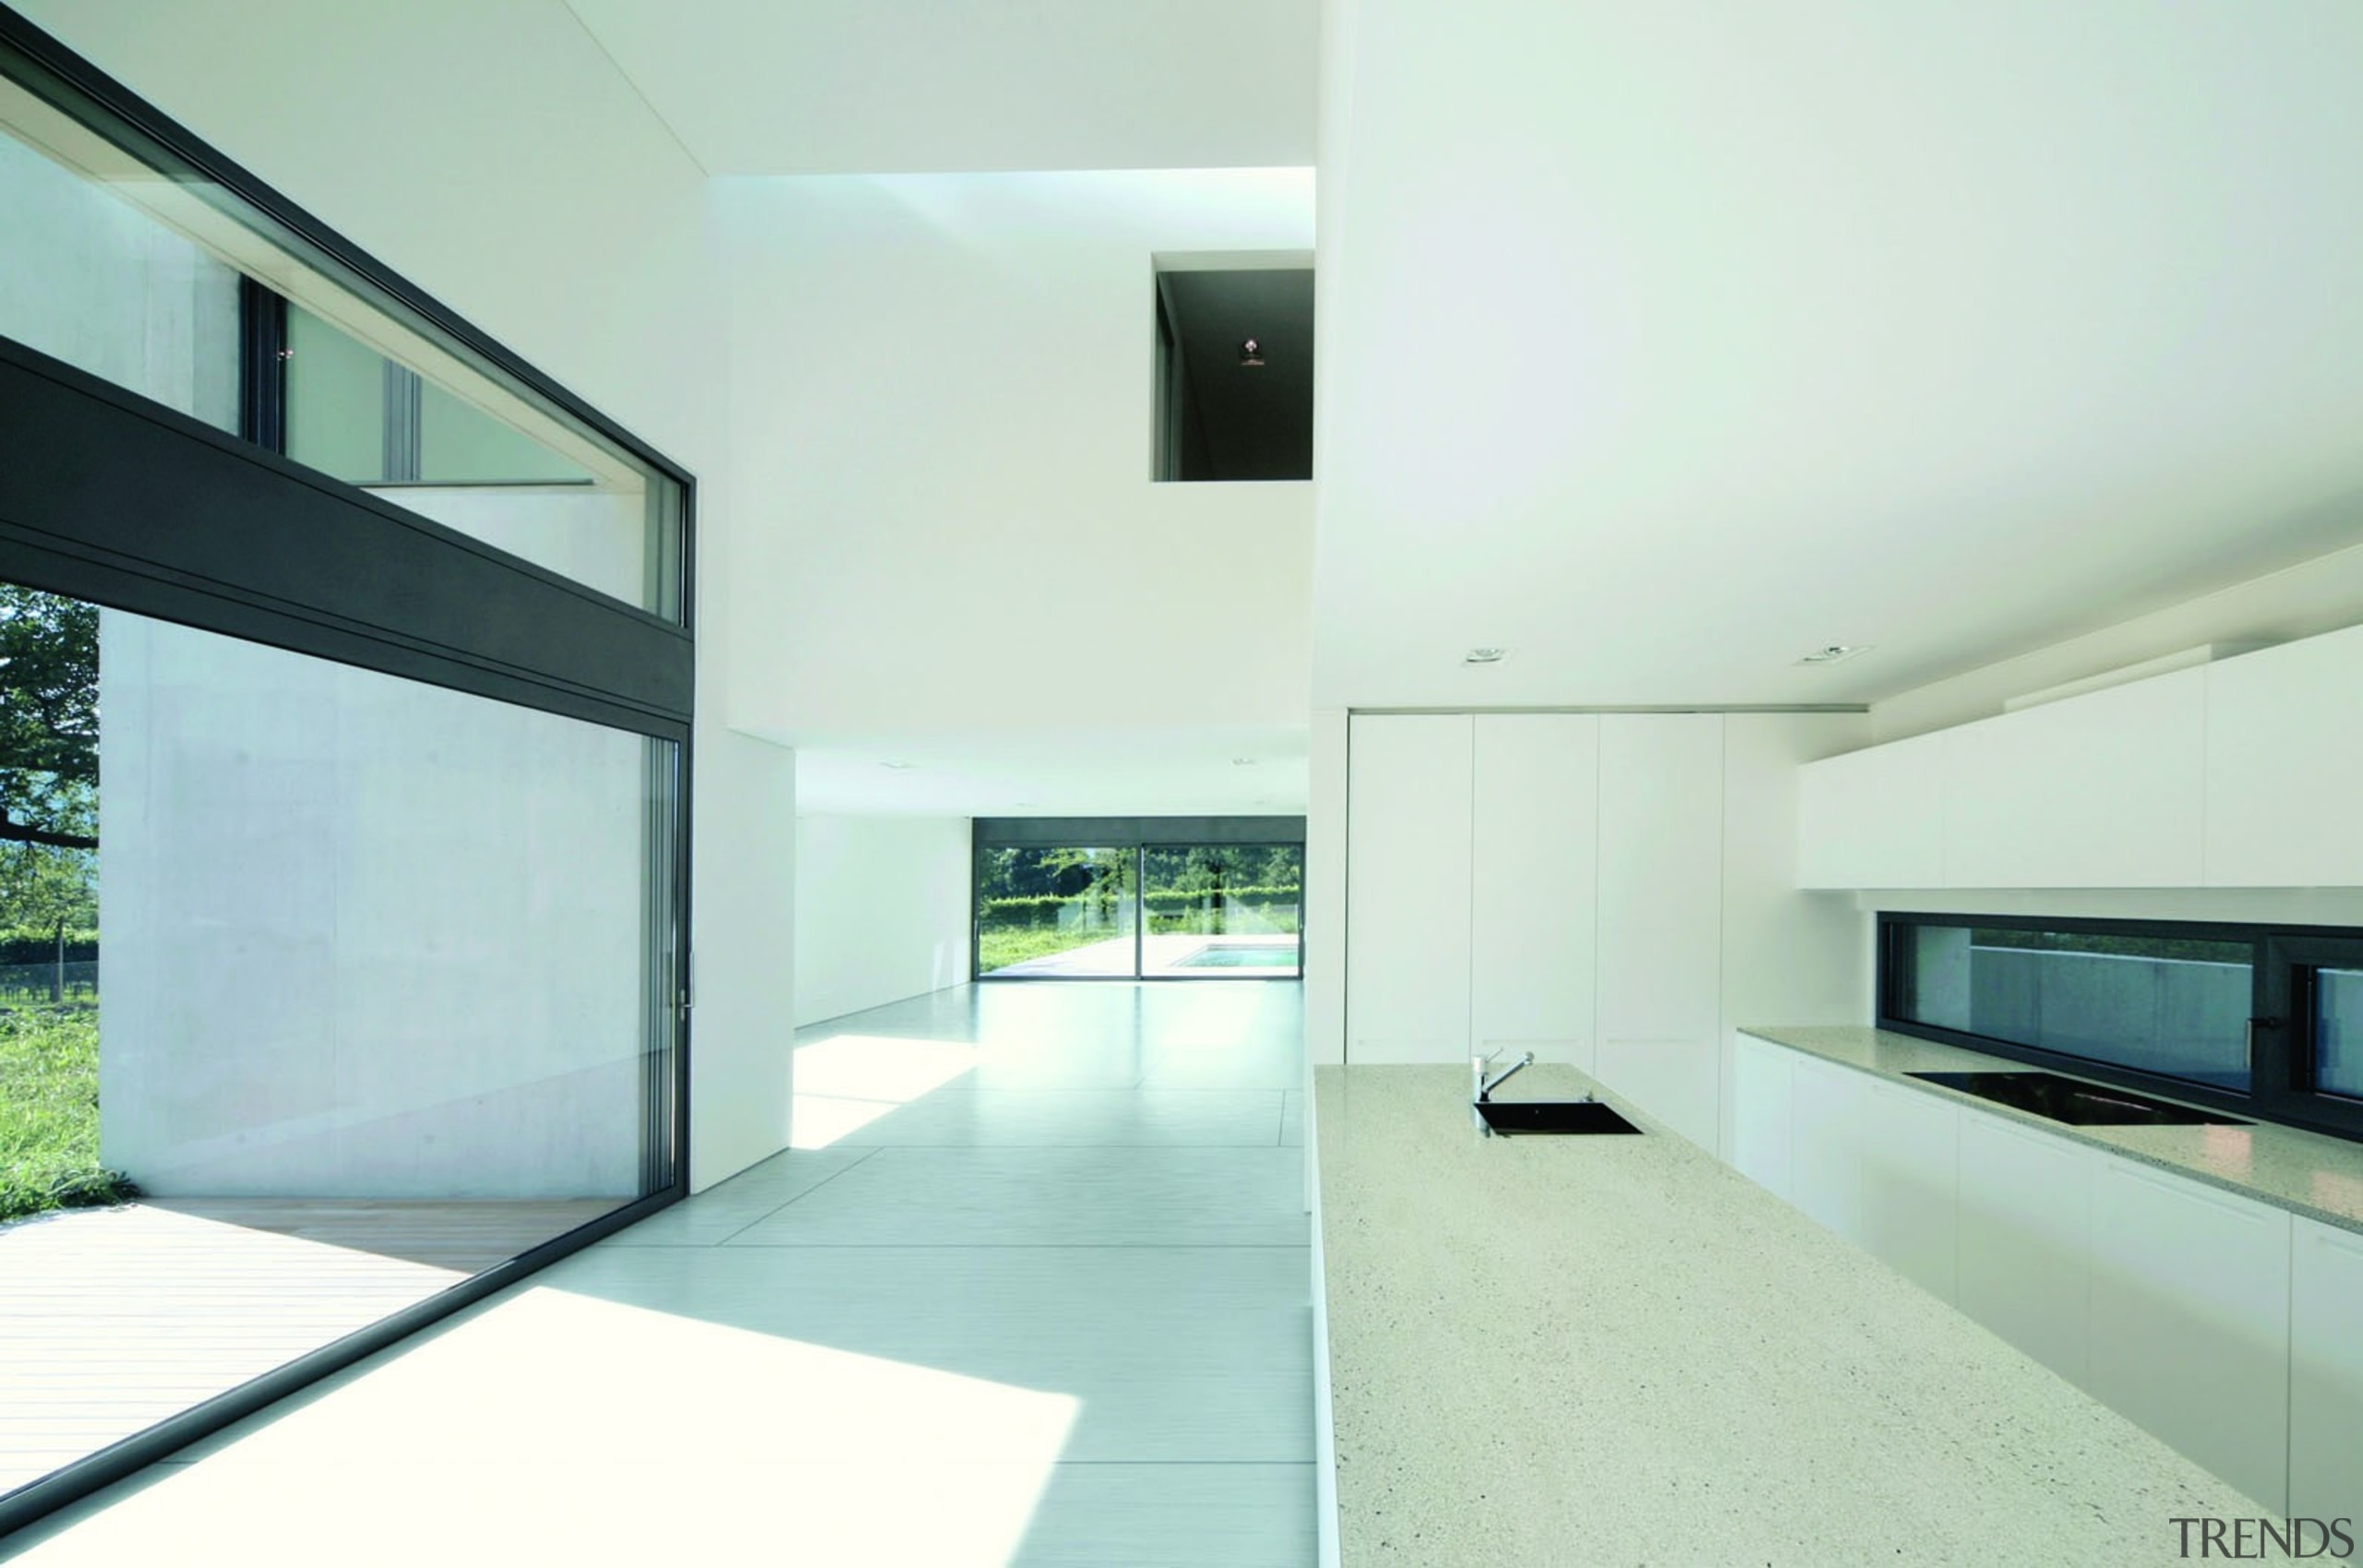 95197916 - Ariane - Strato 2013 - 95197916 architecture, ceiling, daylighting, estate, floor, glass, home, house, interior design, property, real estate, window, white